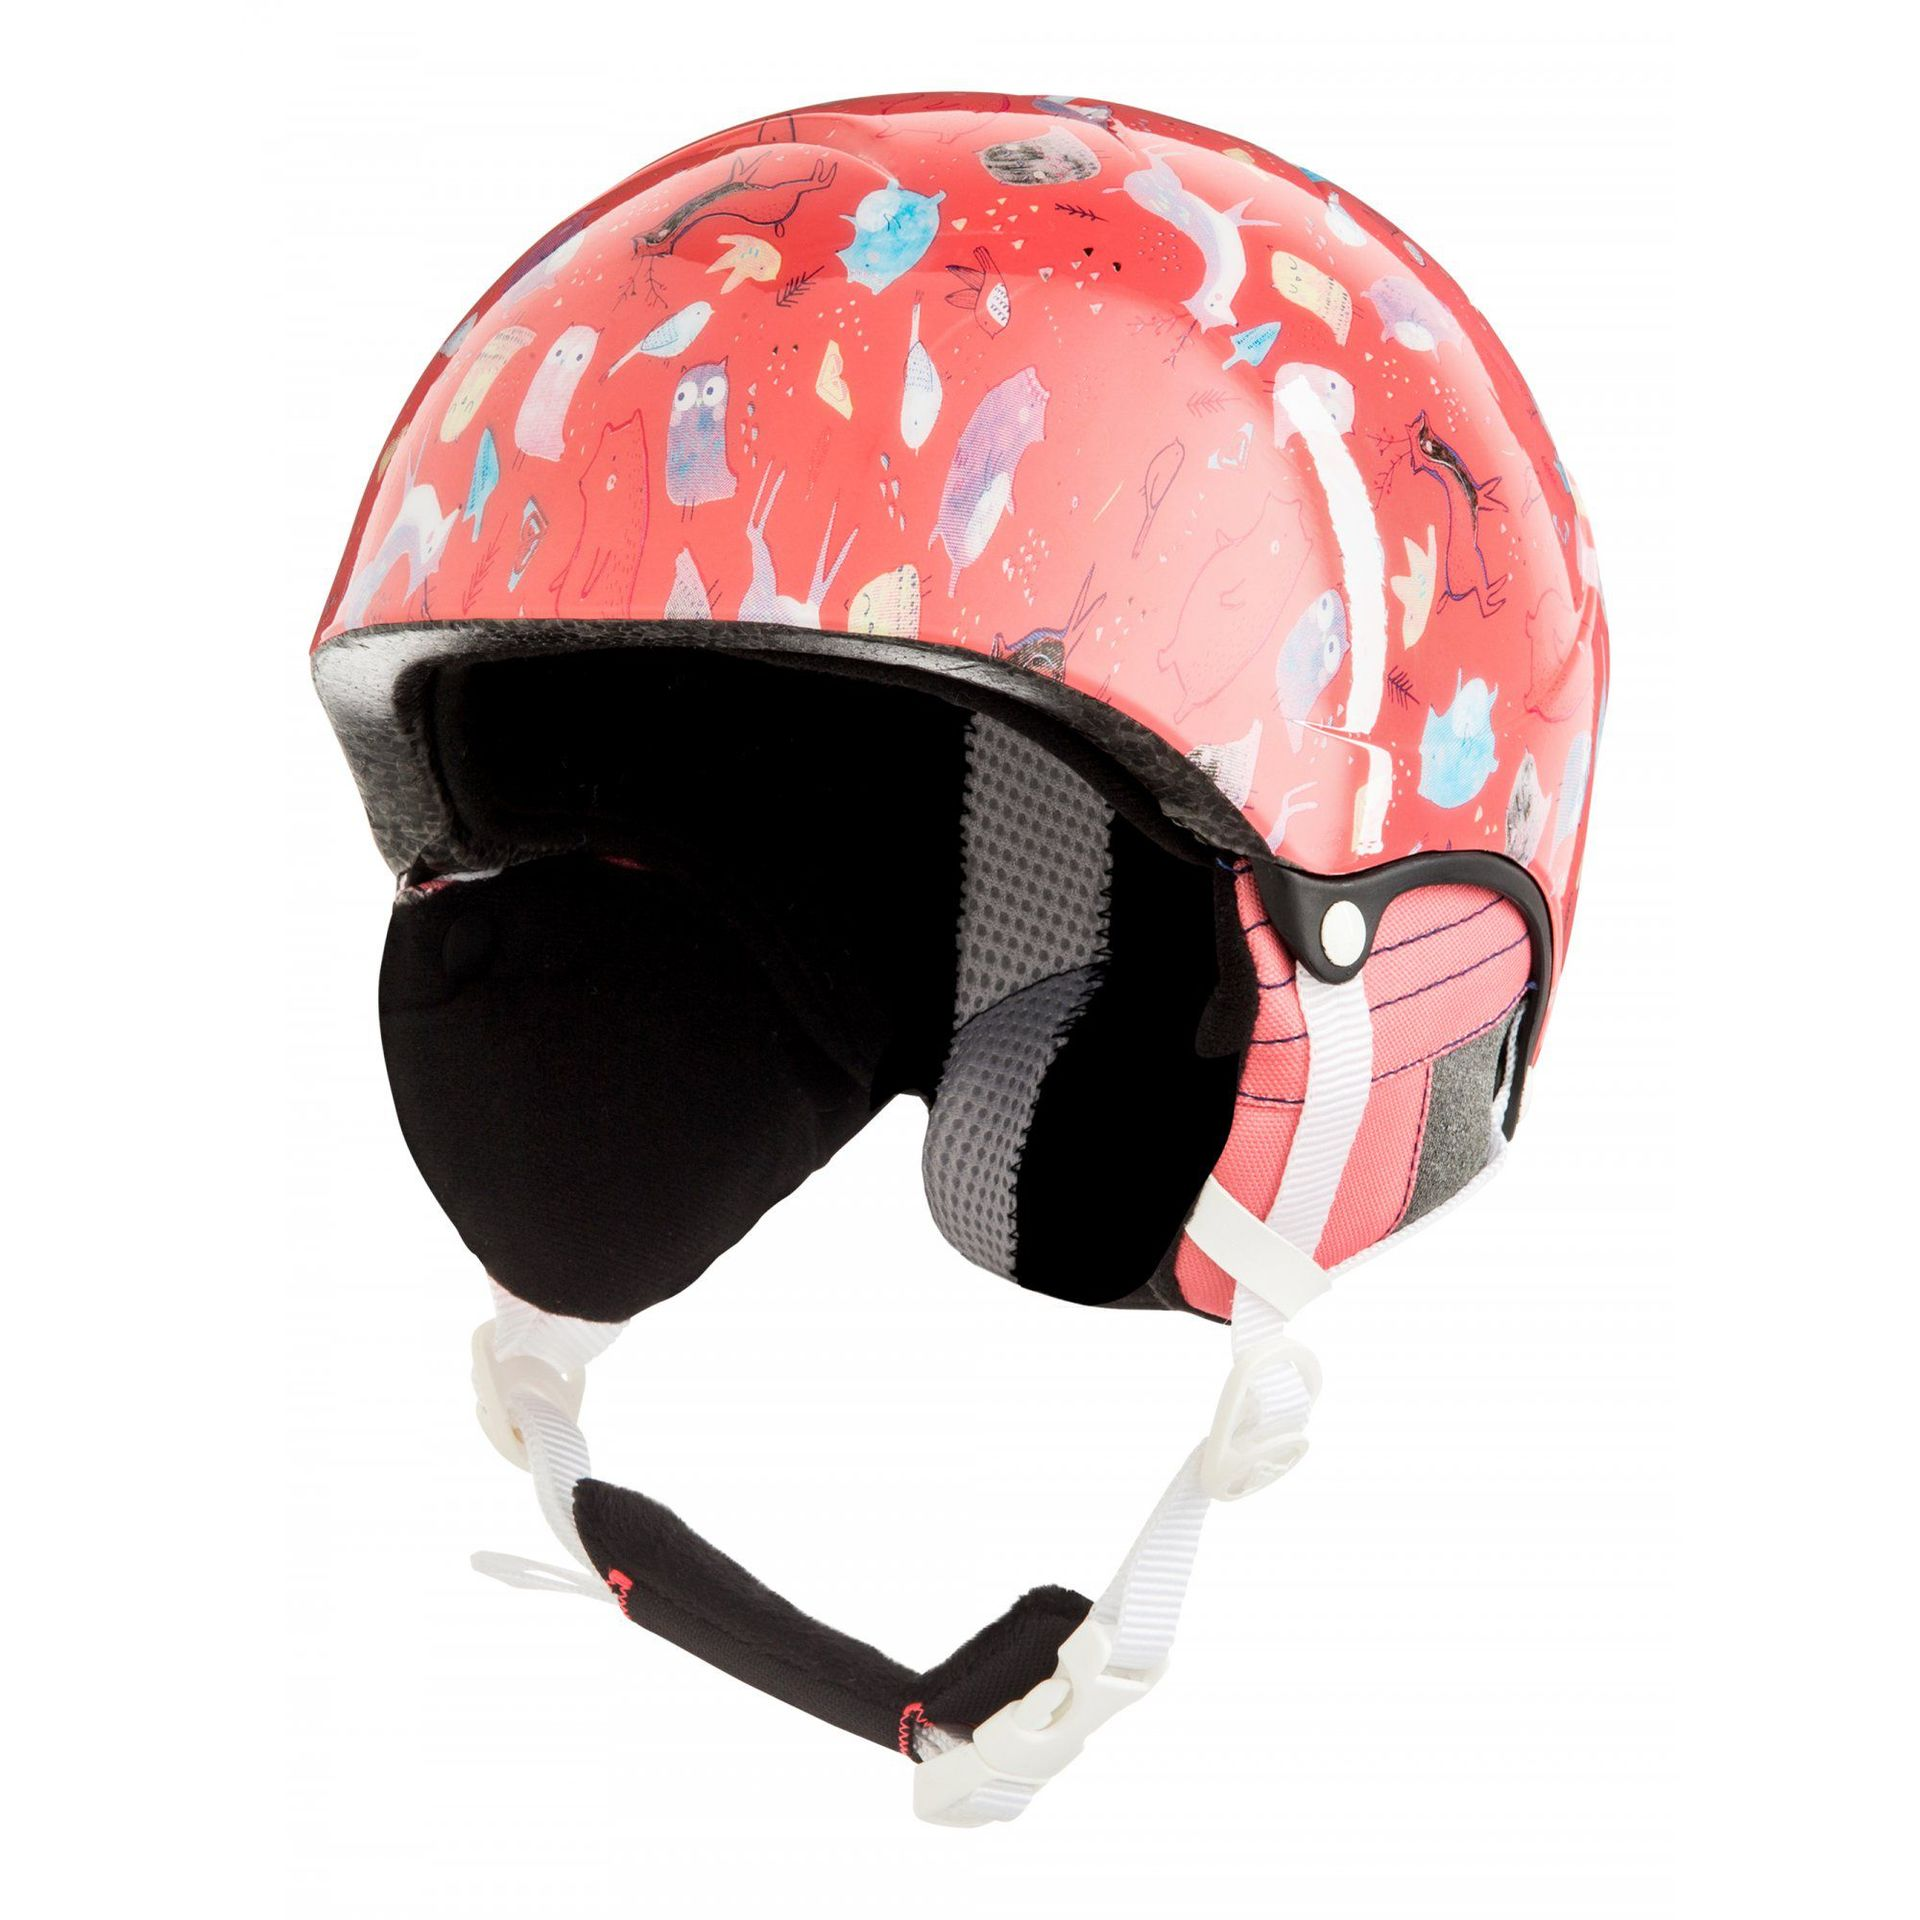 KASK ROXY MISTY GIRL ERGTL03012 MHG0